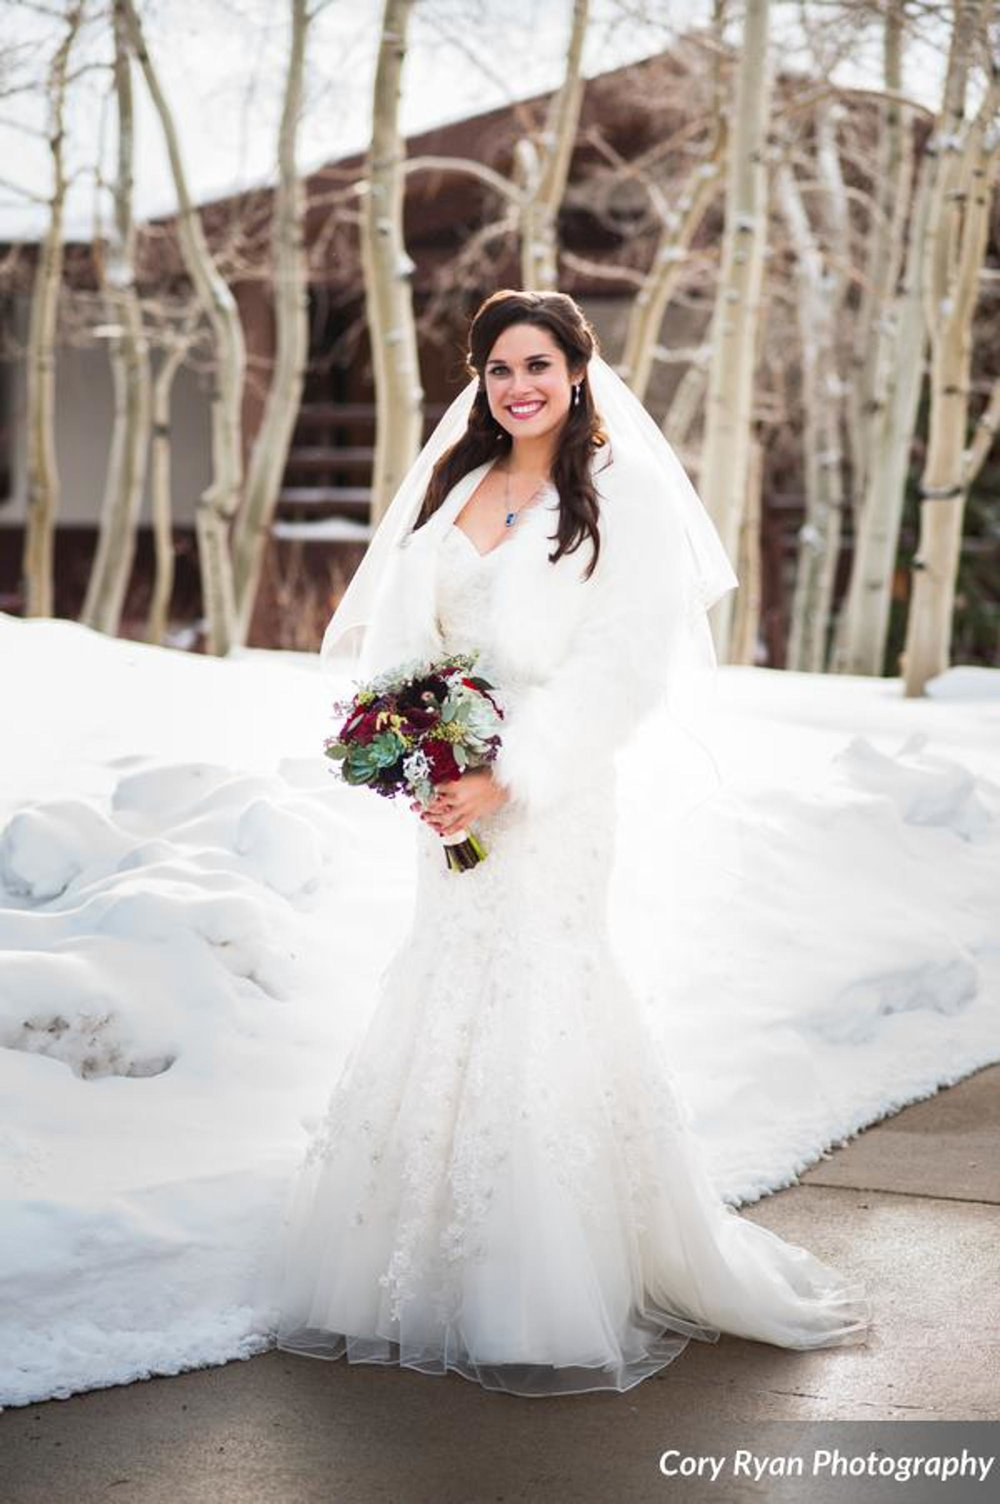 romantic winter wedding stein eriksen lodge-57.jpg